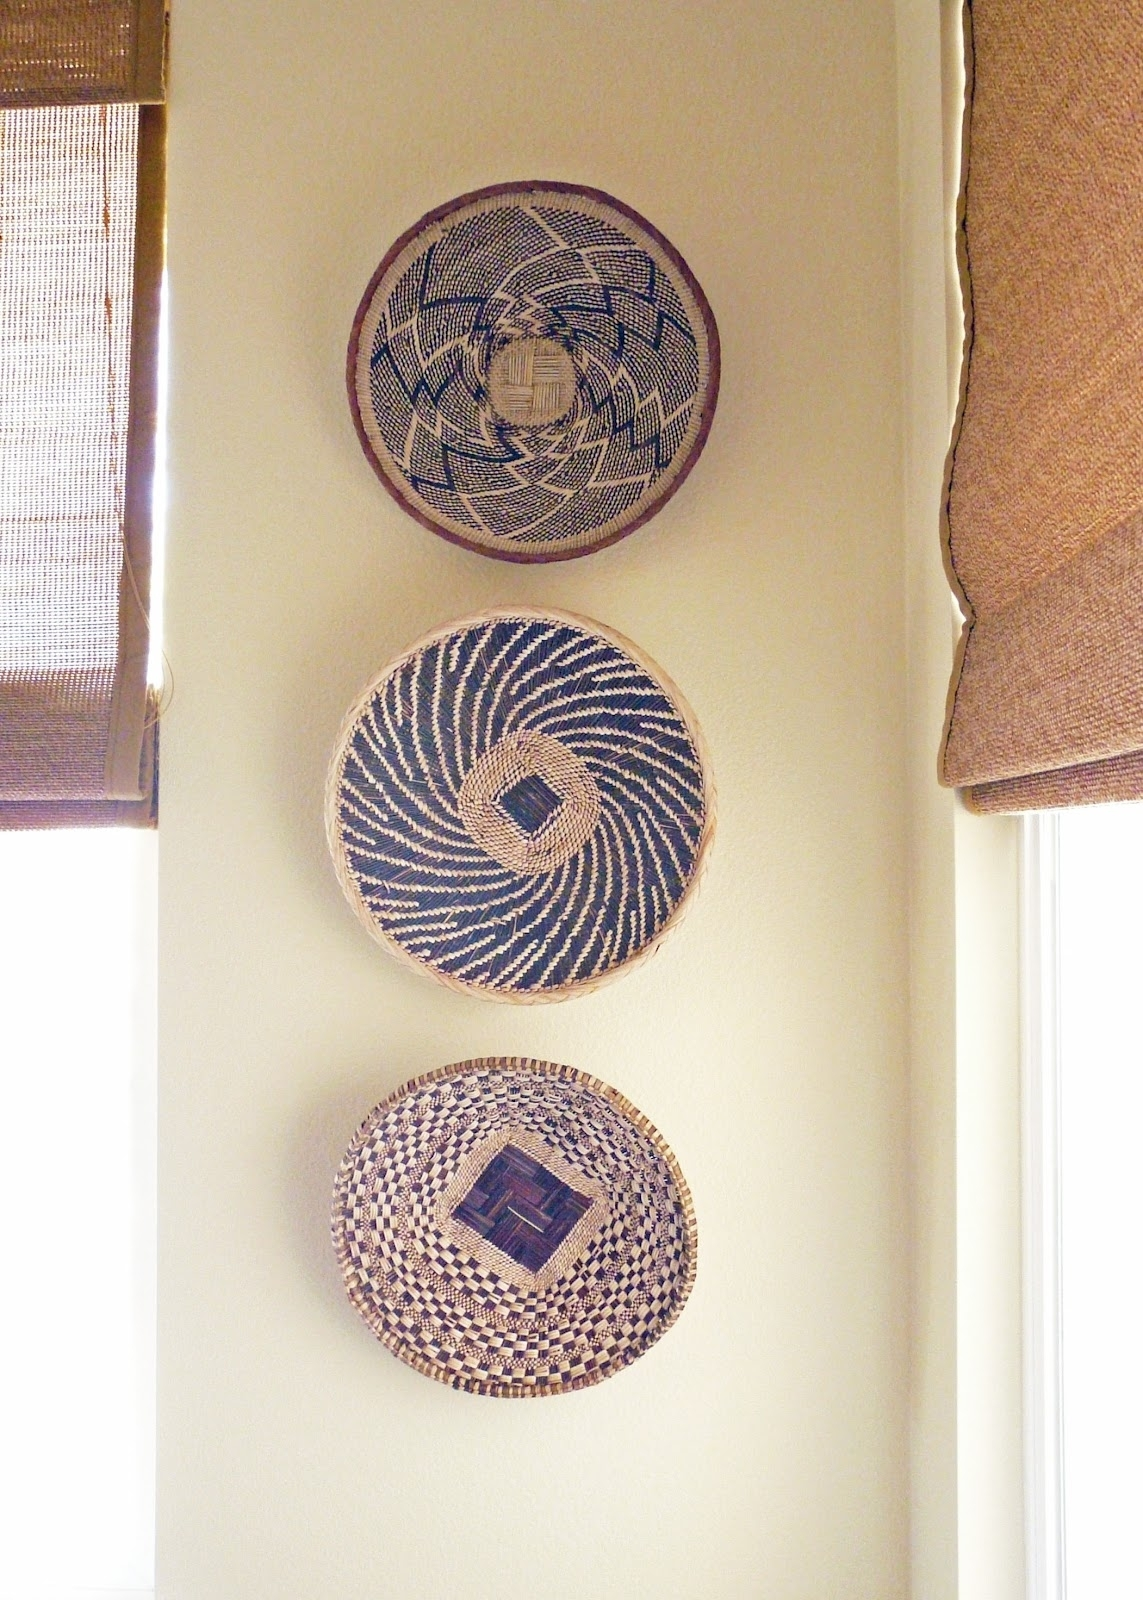 Home] African Basket Wall Decor Pertaining To 2017 African Wall Art (Gallery 12 of 15)